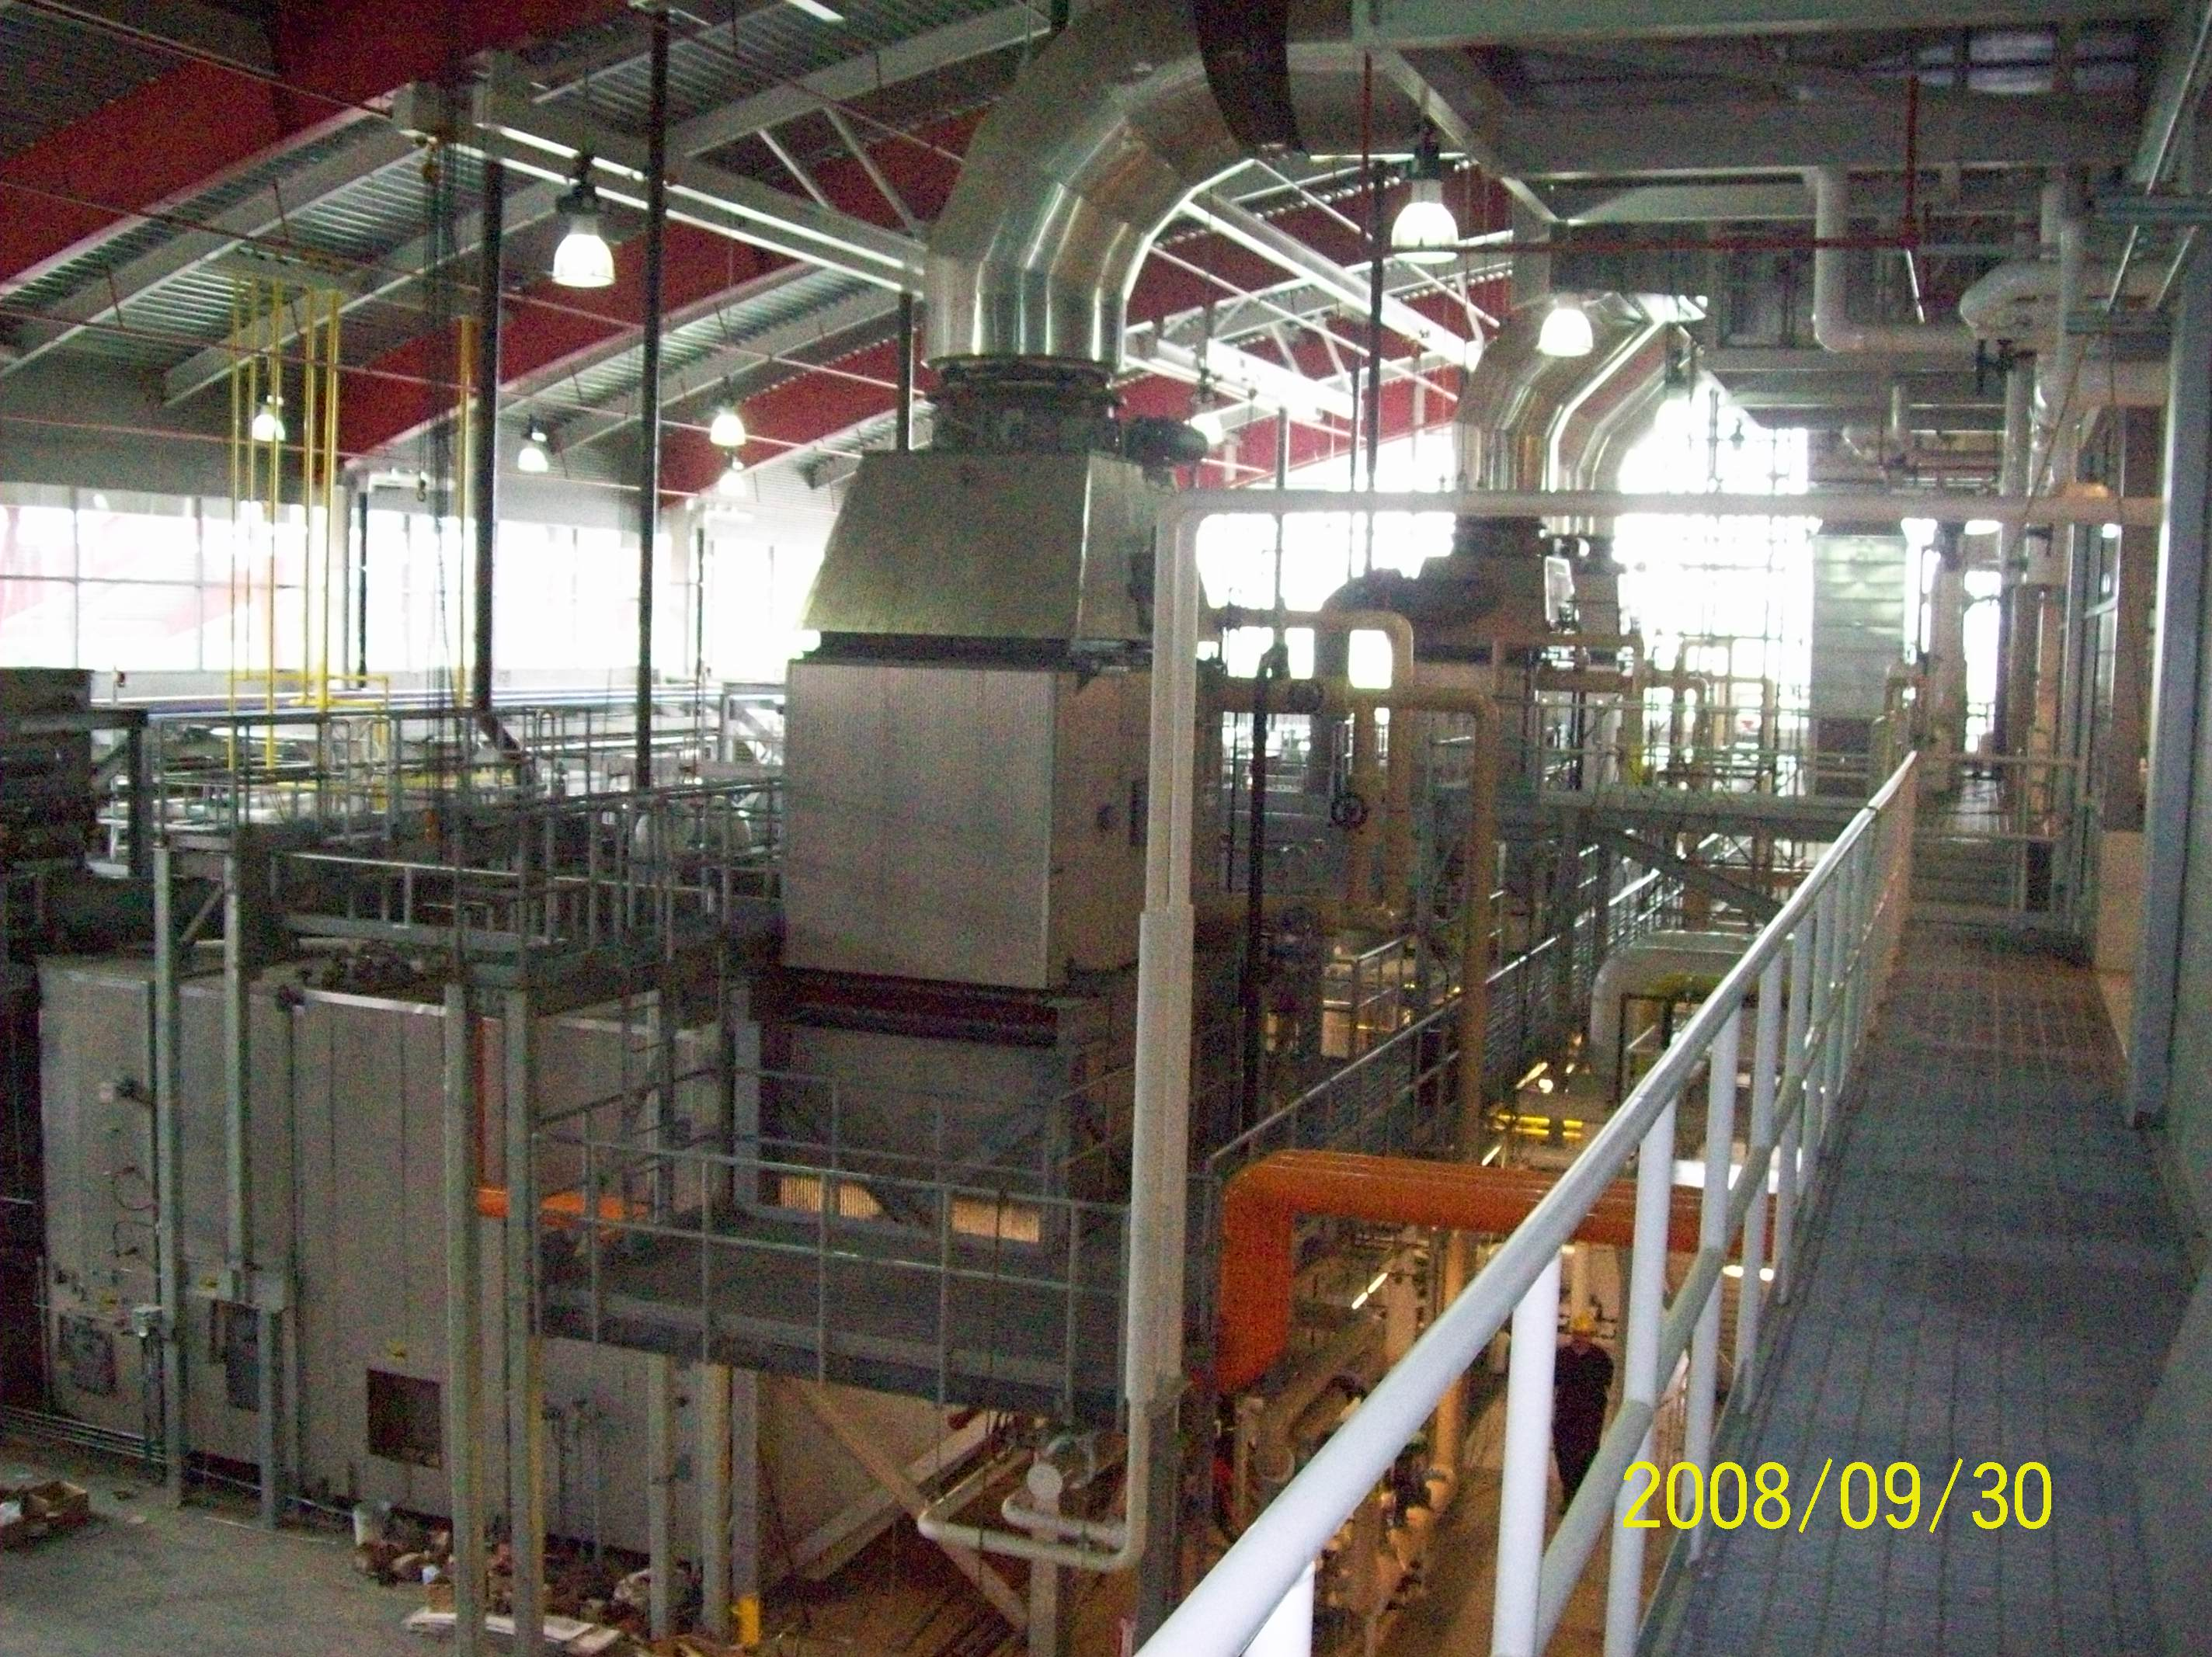 UMass Amherst Central Heating Plant Commissioning